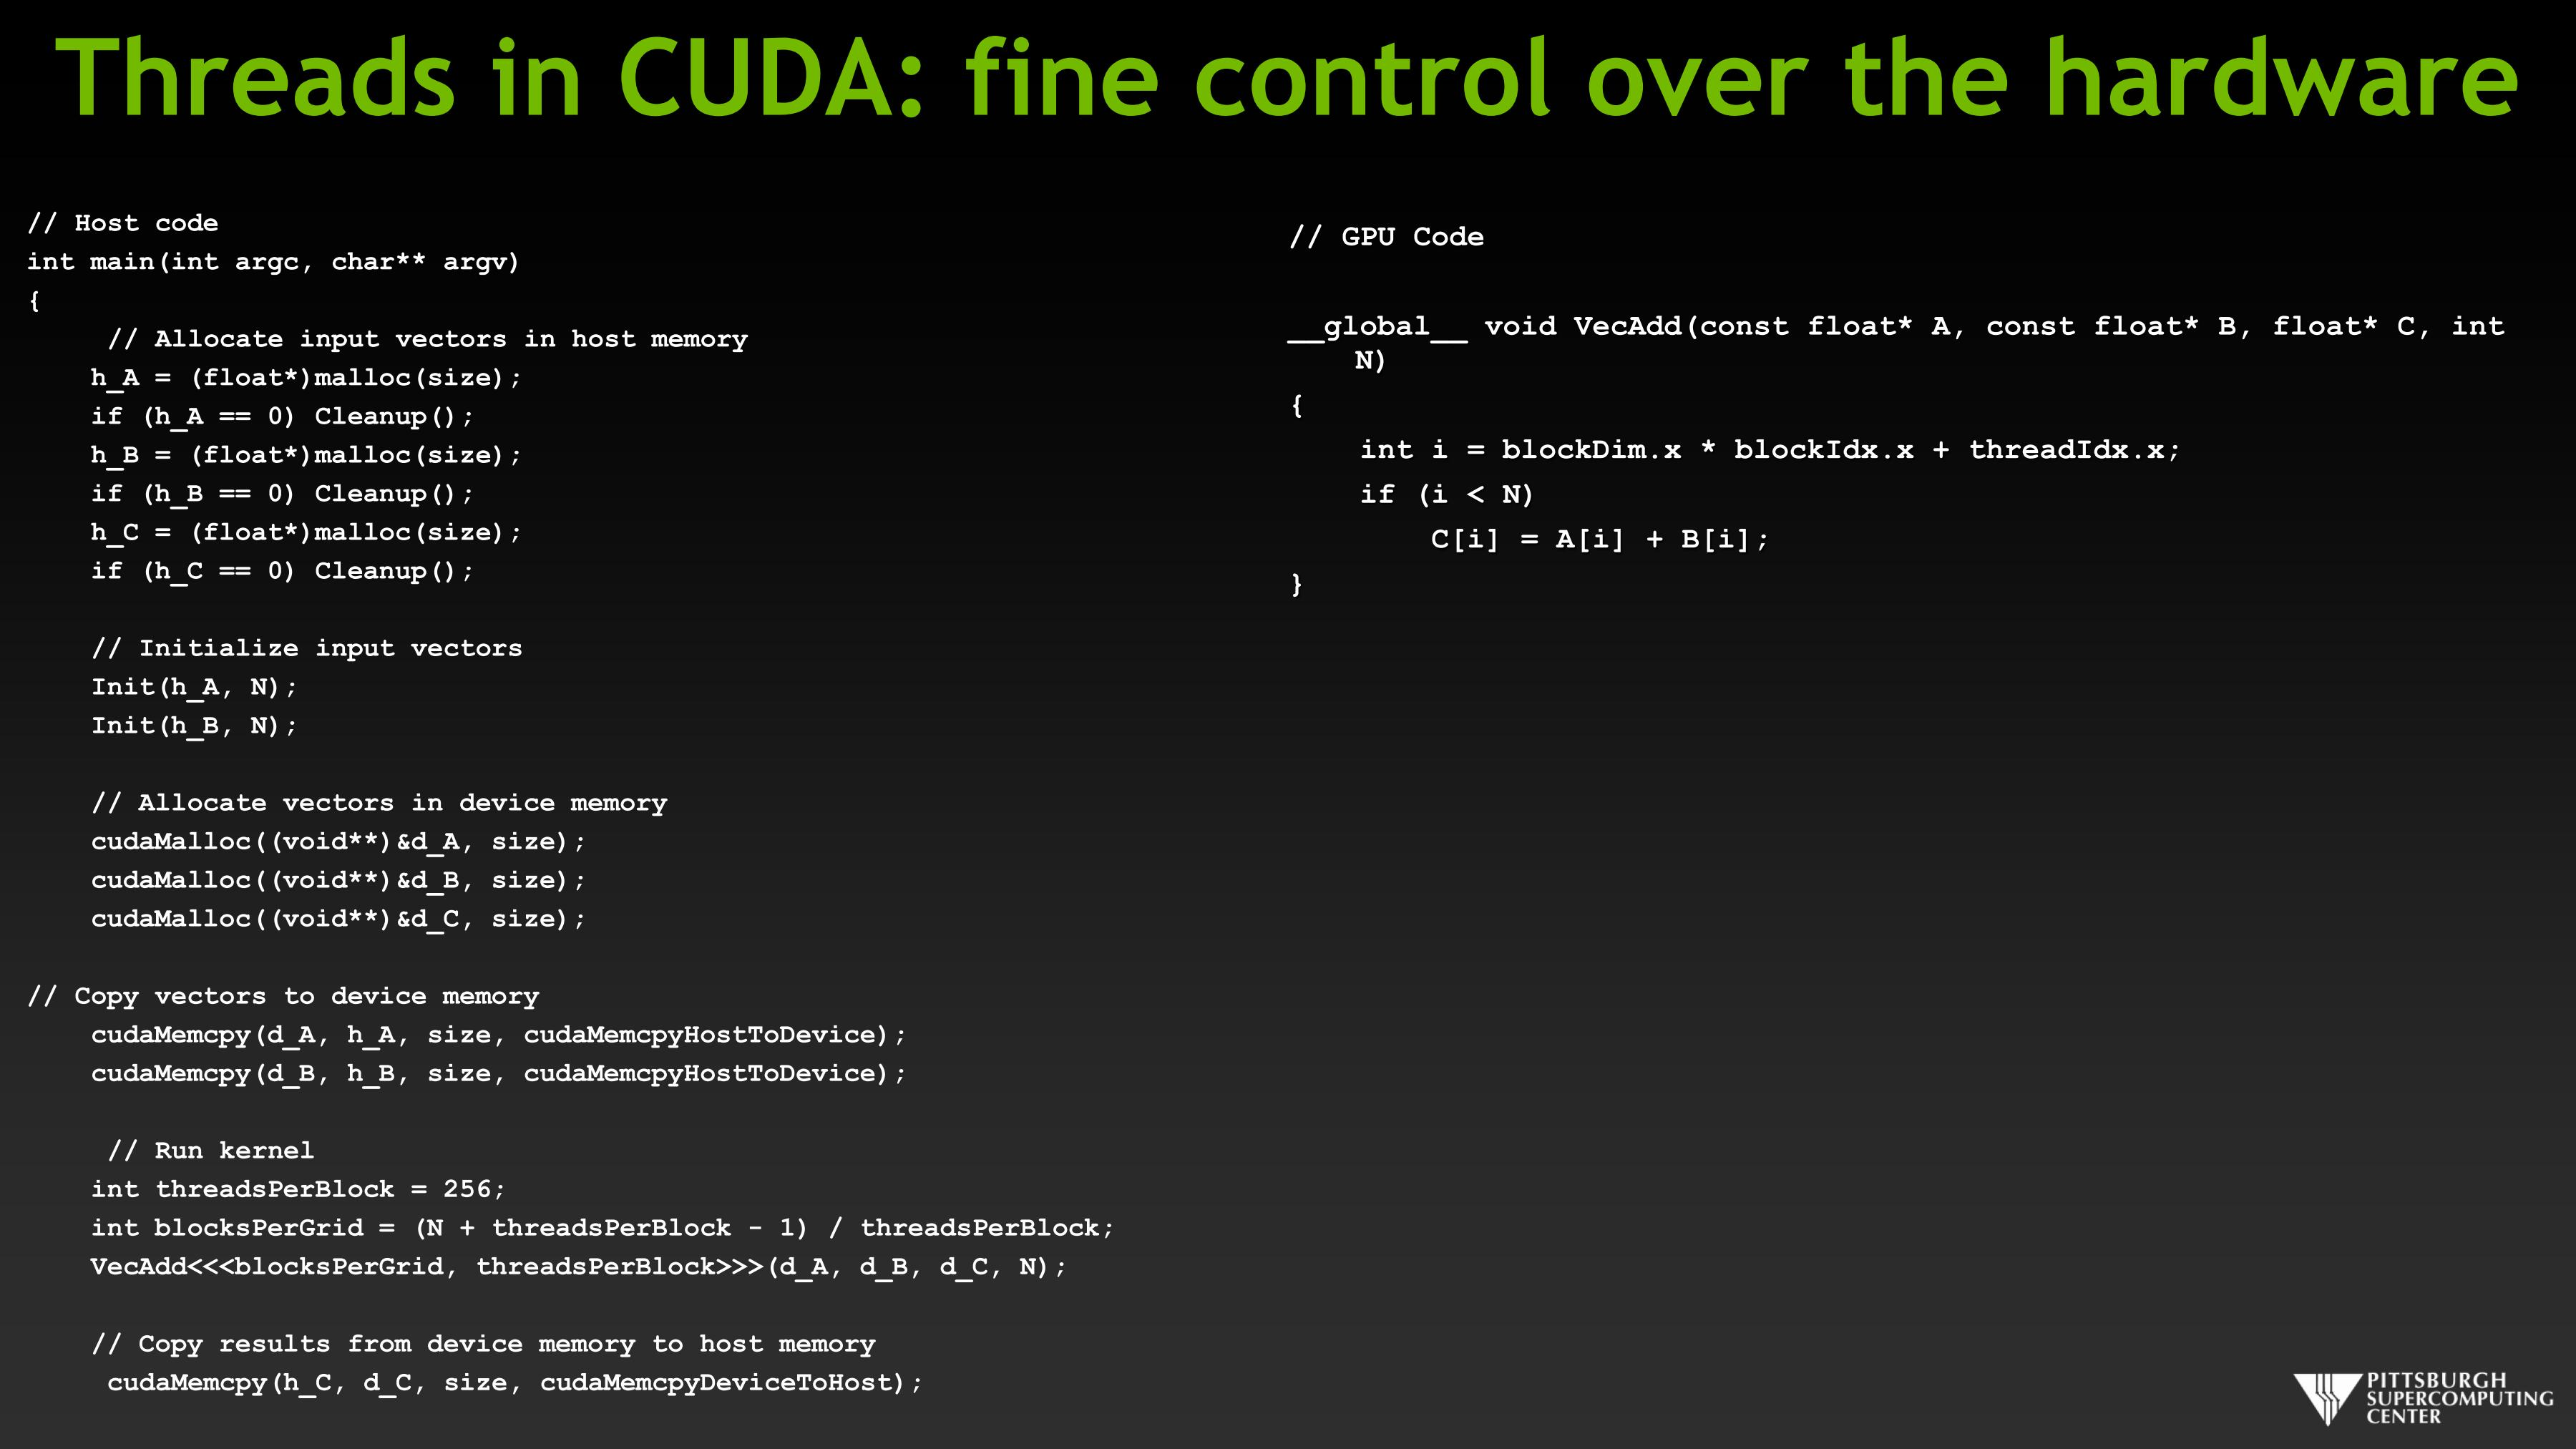 Threads in CUDA: fine control over the hardware